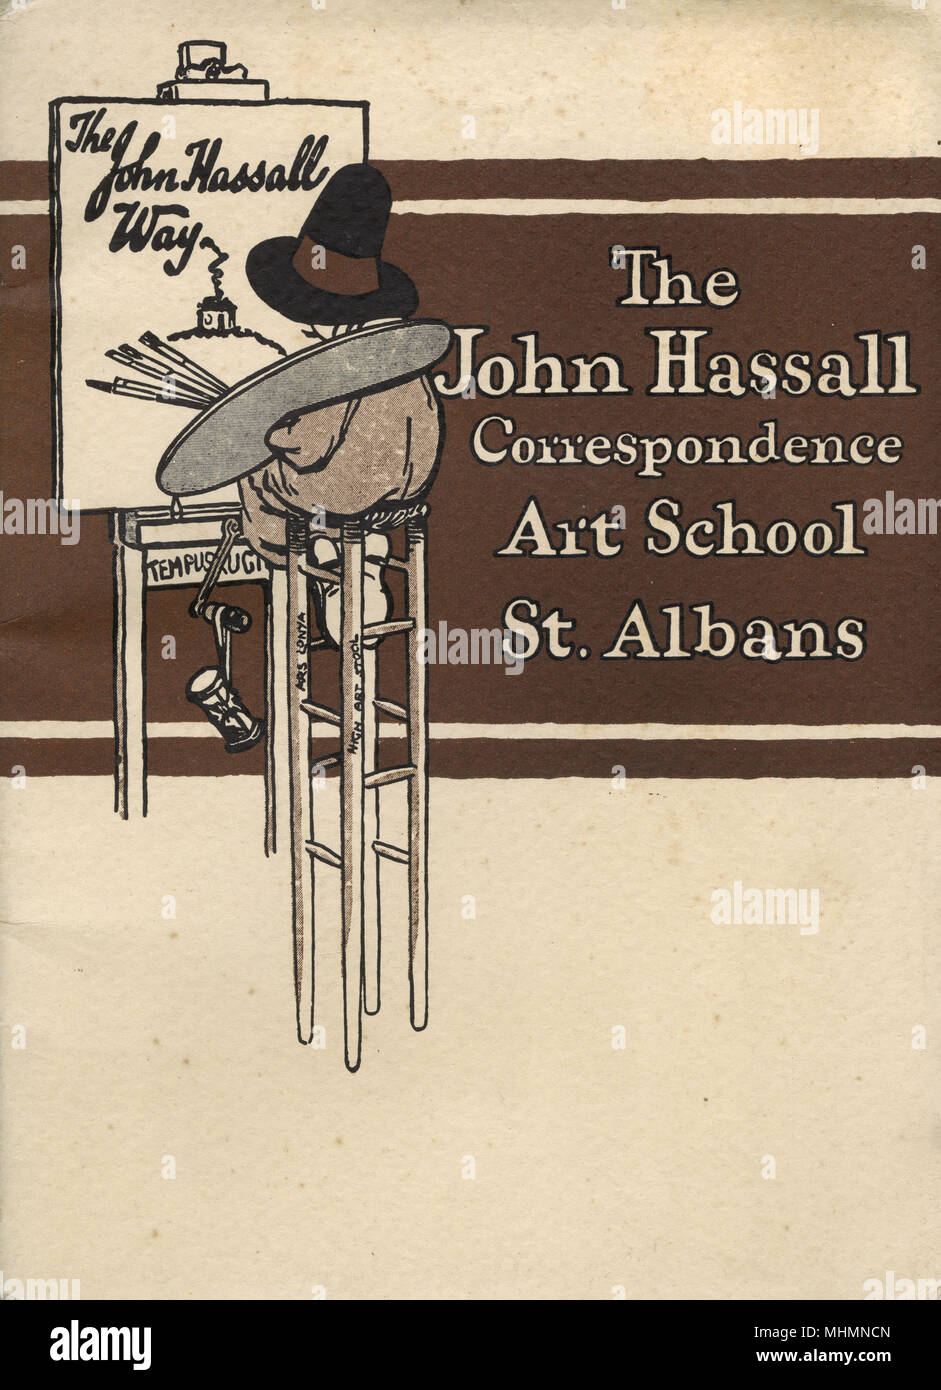 Front cover of a brochure for The John Hassall Correspondence Art School.  Hassall was a leading illustrator and poster artist who established an art school in Kensington in the 1900s.  It closed during the First World War but re-emerged as a correspondence school, based in St. Albans.  Frequently advertised in magazines during the Great War promoting illustration as not only a way to earn some money, but as a relaxing pastime, especially for serving soldiers.       Date: c.1920 - Stock Image